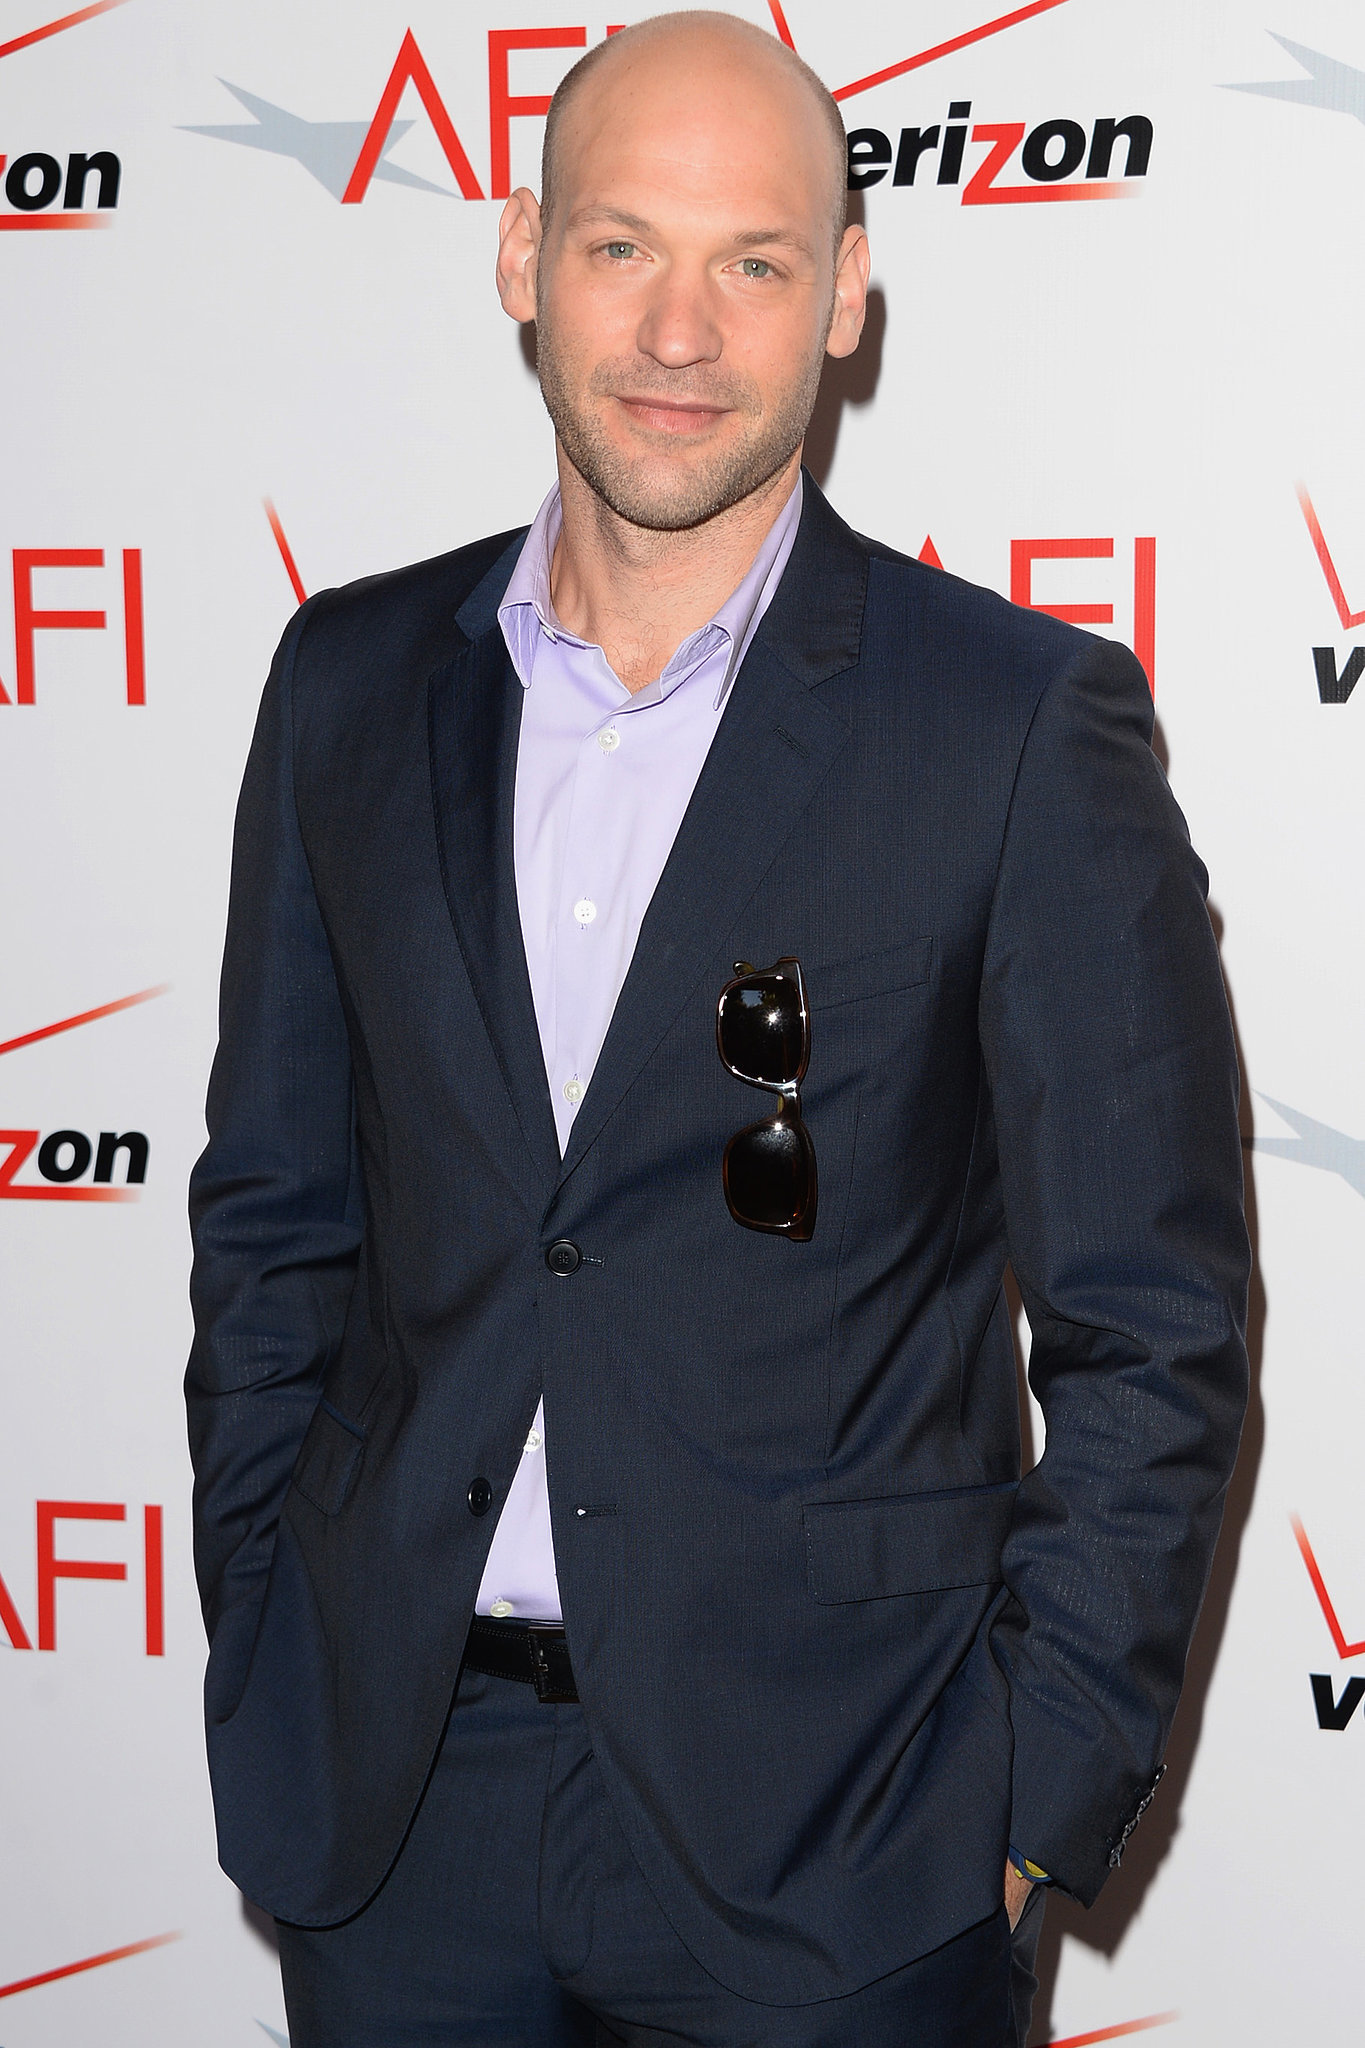 House of Cards' Corey Stoll joined Ant-Man along with Paul Rudd and Michael Douglas.